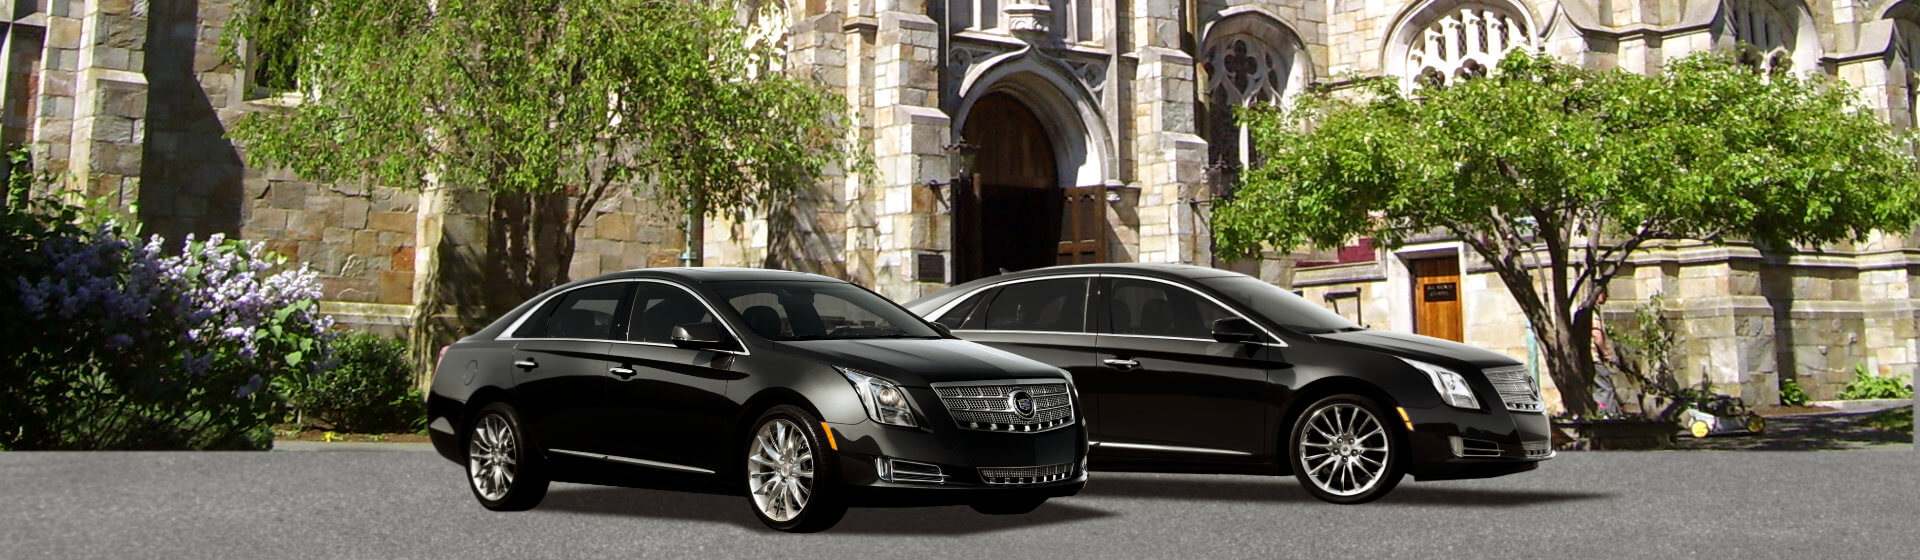 Boston MA to Newport RI Airport Car and Limousine Services